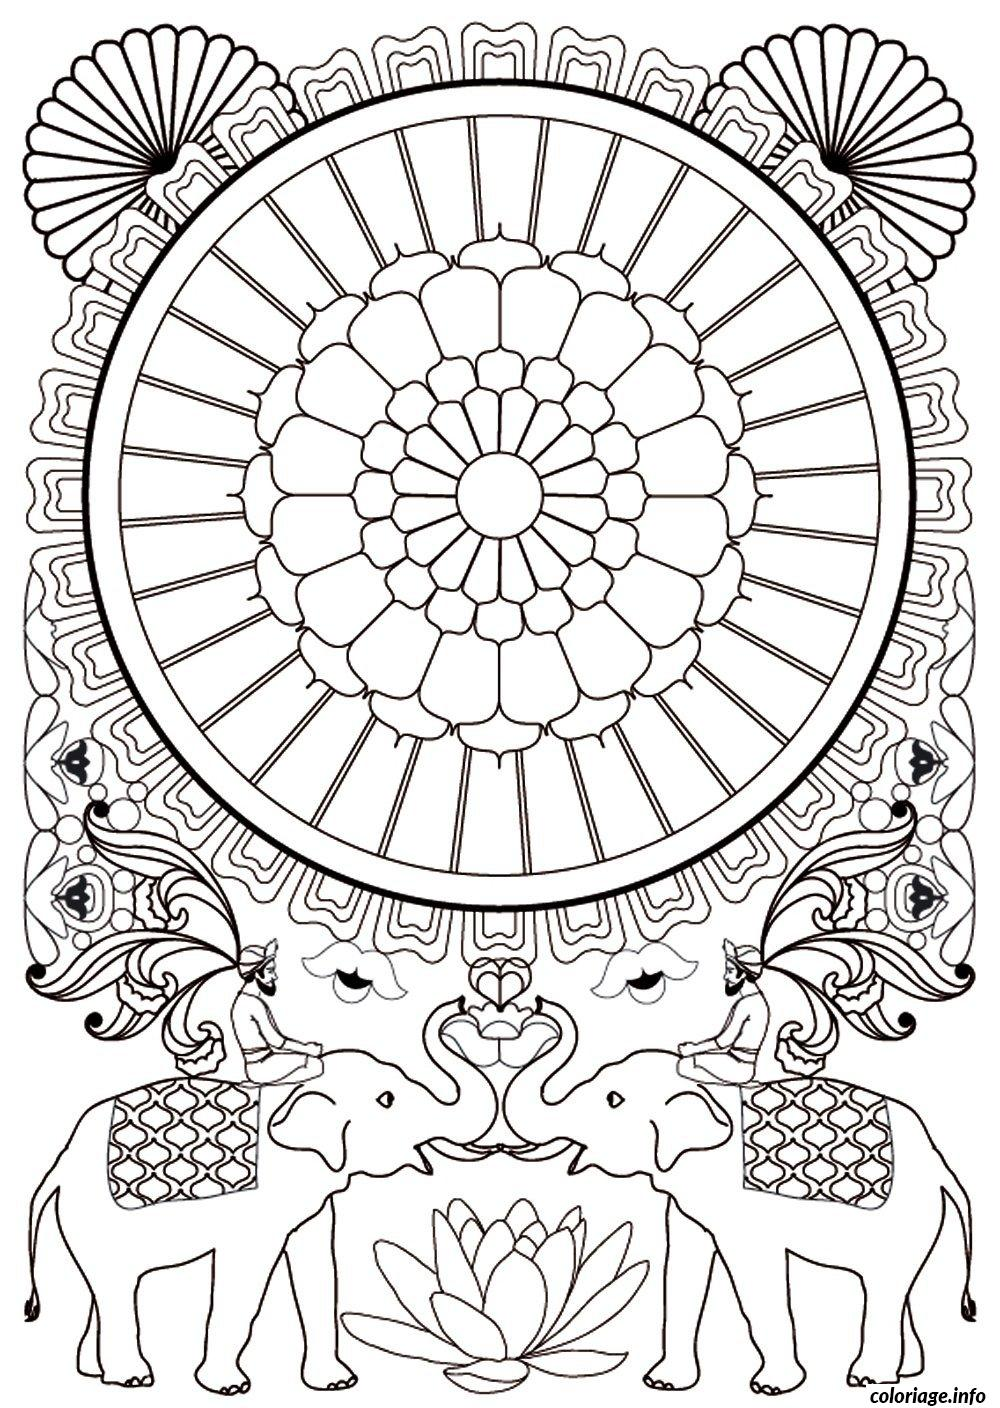 Hedwige additionally Anti Stress Adulte in addition Midnight Princess Disney moreover Thumbs Coloring Adult Haunted House And Pumpkins furthermore Zootopie Madame Bellwether. on simple mandala coloring pages